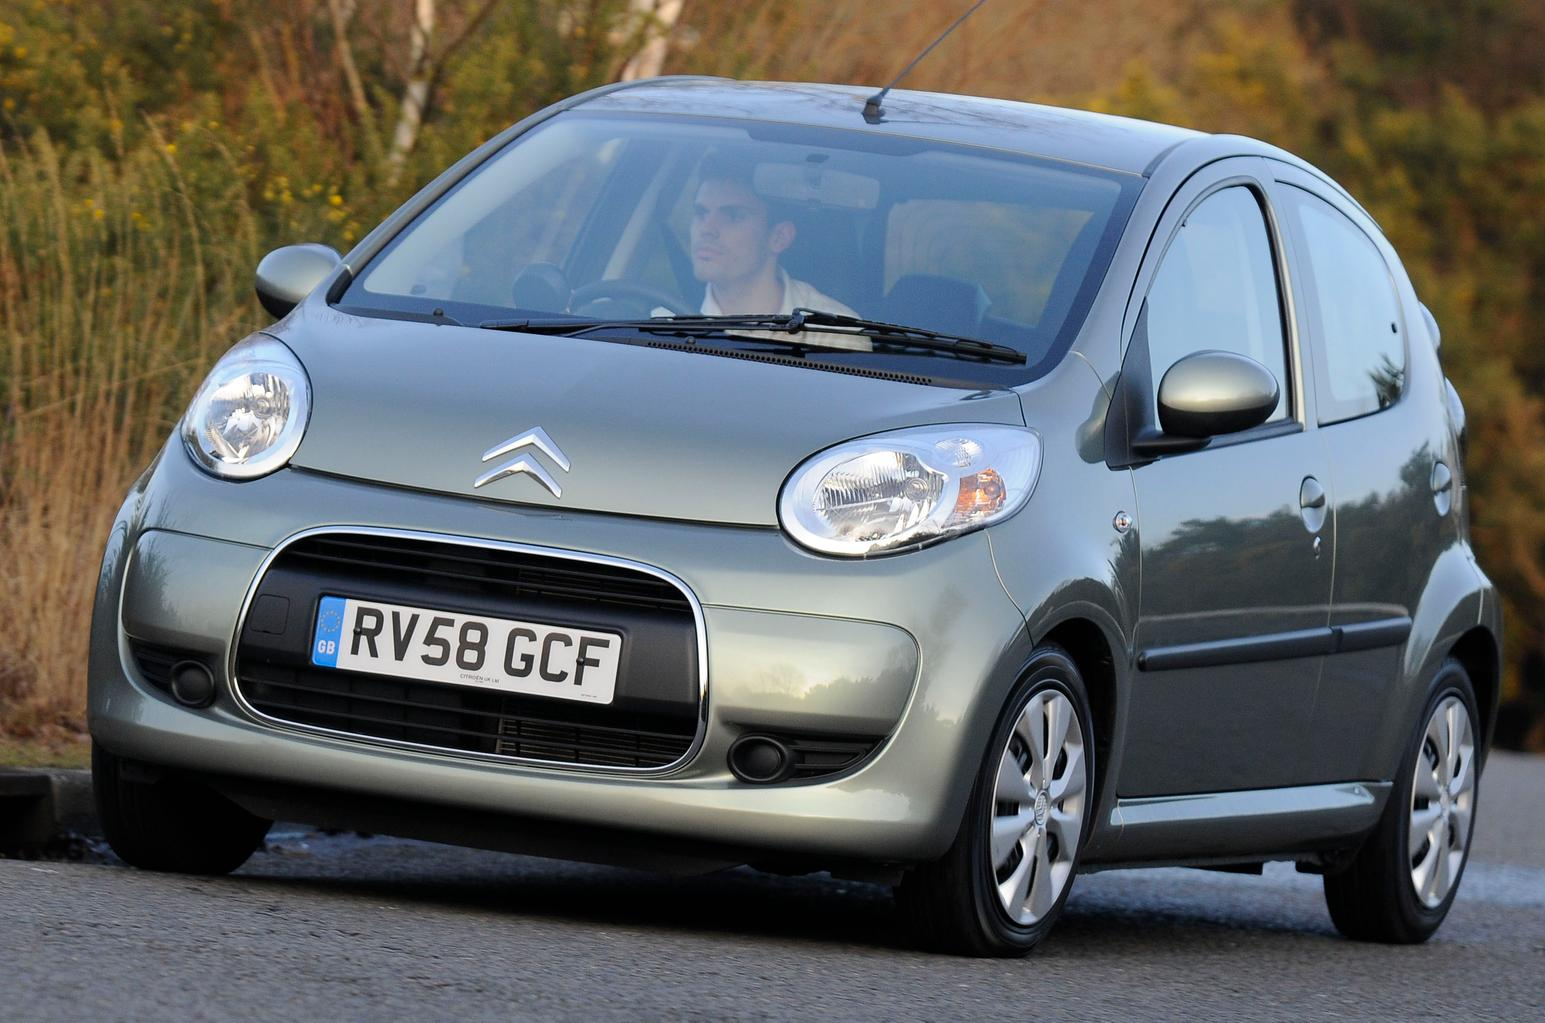 Top 10 used city cars for less than £5000 (and the ones to avoid)